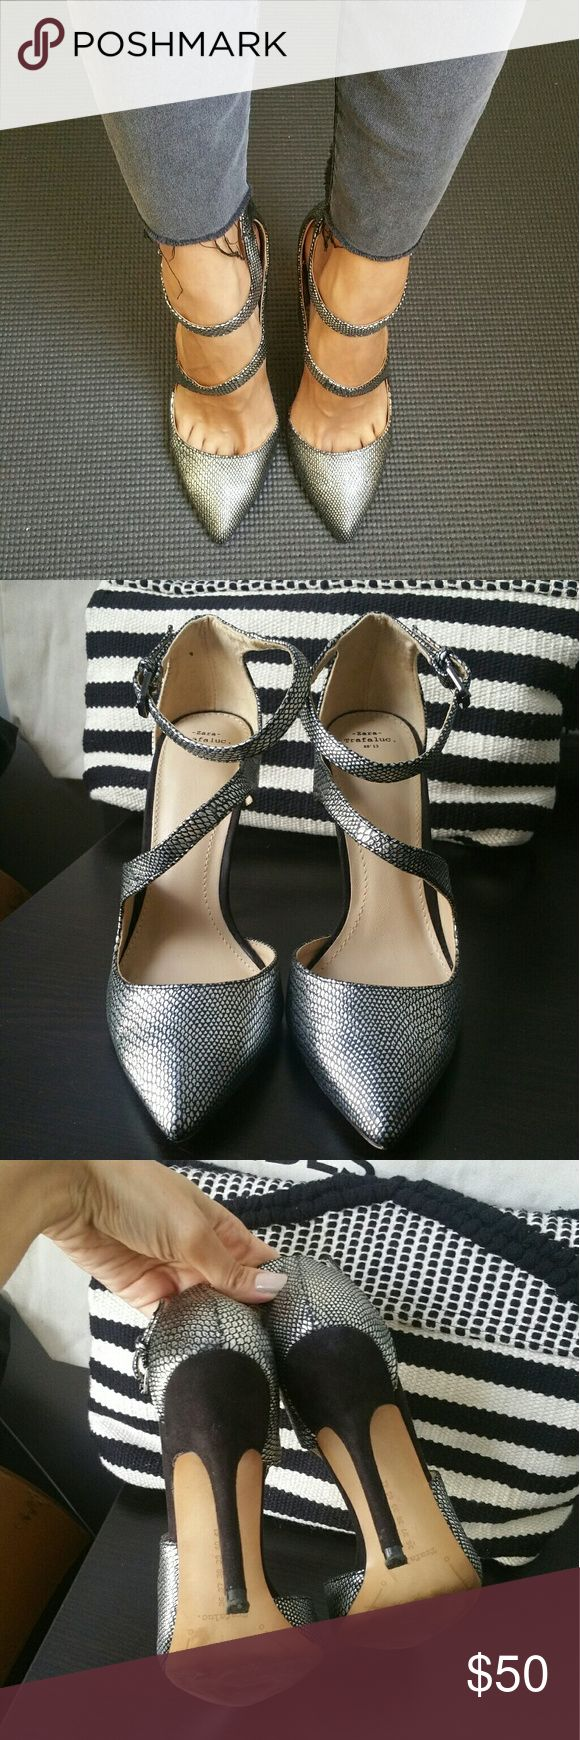 ZARA Silver Straps Shoes *Rare item* ZARA statement heels, amazing design, go with everything. Very hard to find item. Size US 6 / EUR 36. Tight fit. Super comfortable to walk in. Worn very few times. Have a dark spot as pictured on the inside part of the left shoe, bought them new at the store already like that. One of my personal favorites, will not be too flexible on price. Zara Shoes Heels